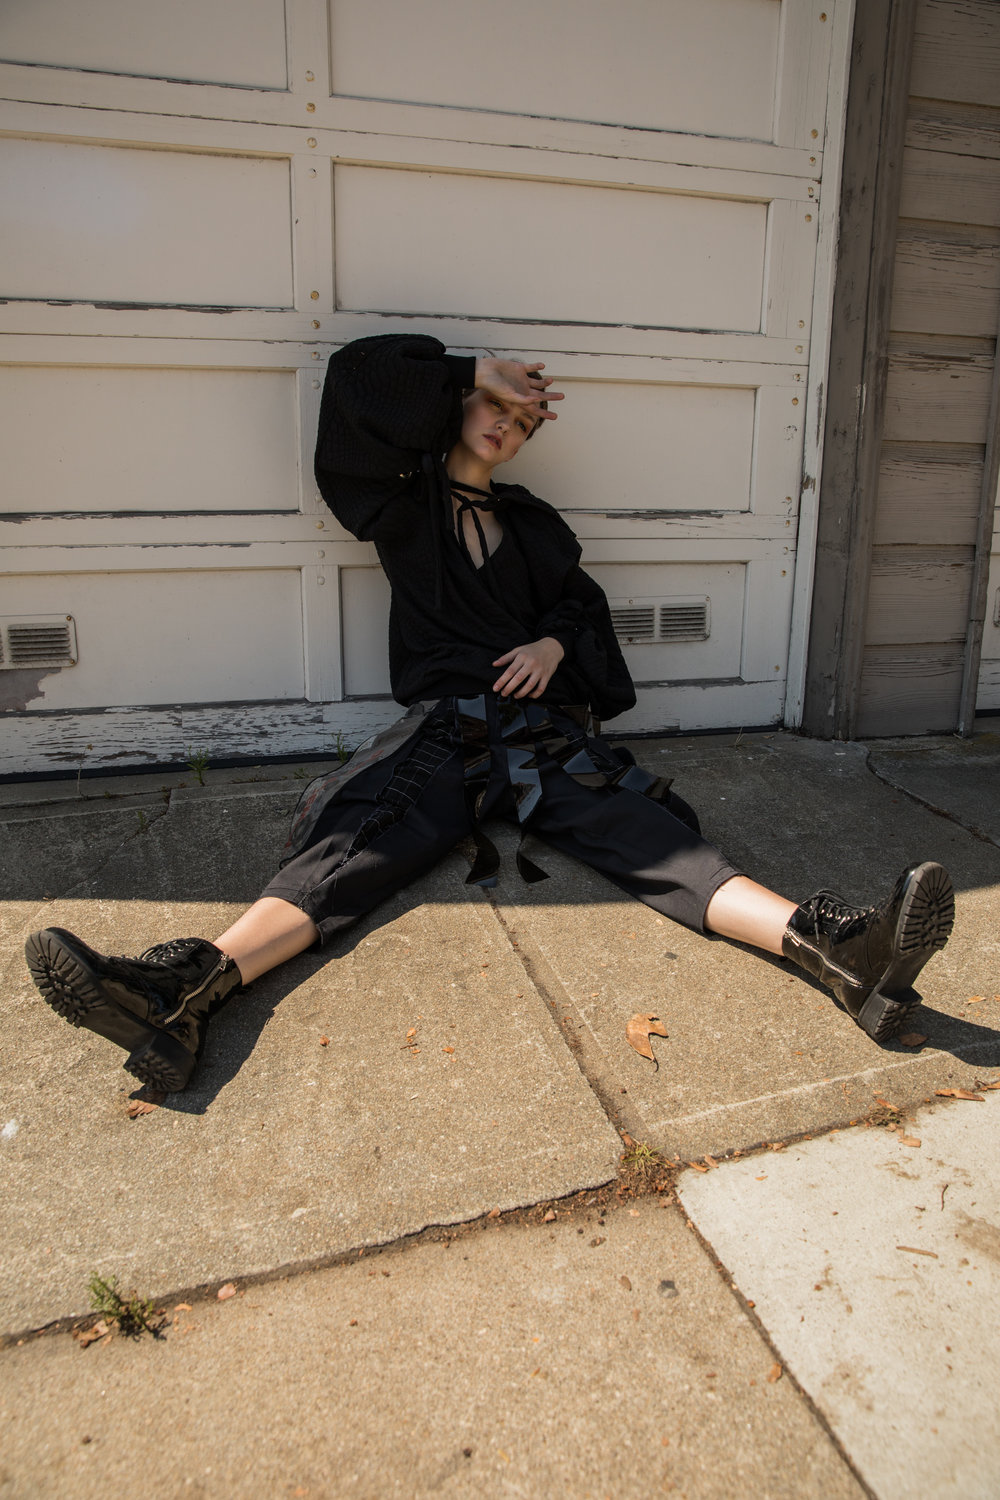 Sweater by Black & Brown,Skirt by Spicy.works,Pants by Eske,Shoes Vintage